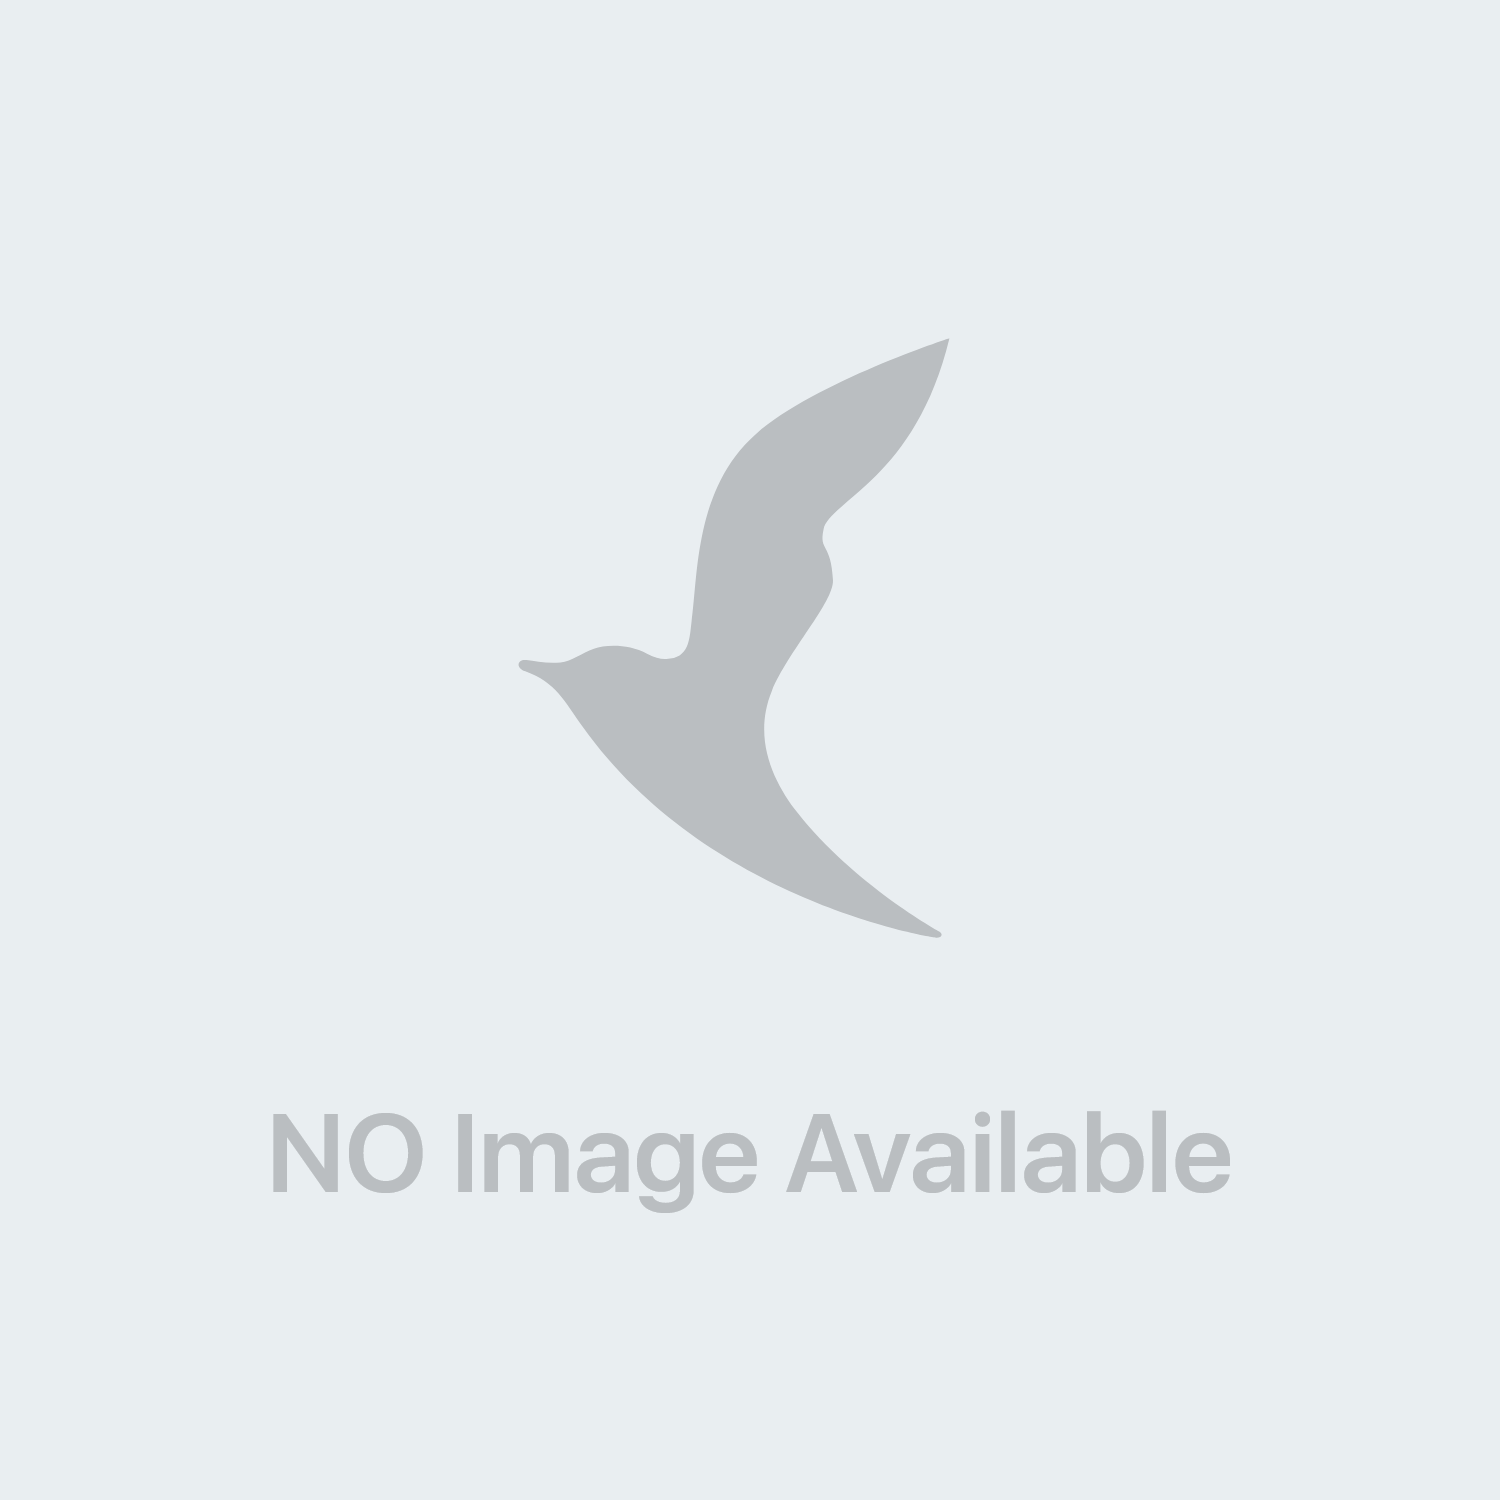 Ensur Plus Neutro Alimento Senza Glutine 500 Ml